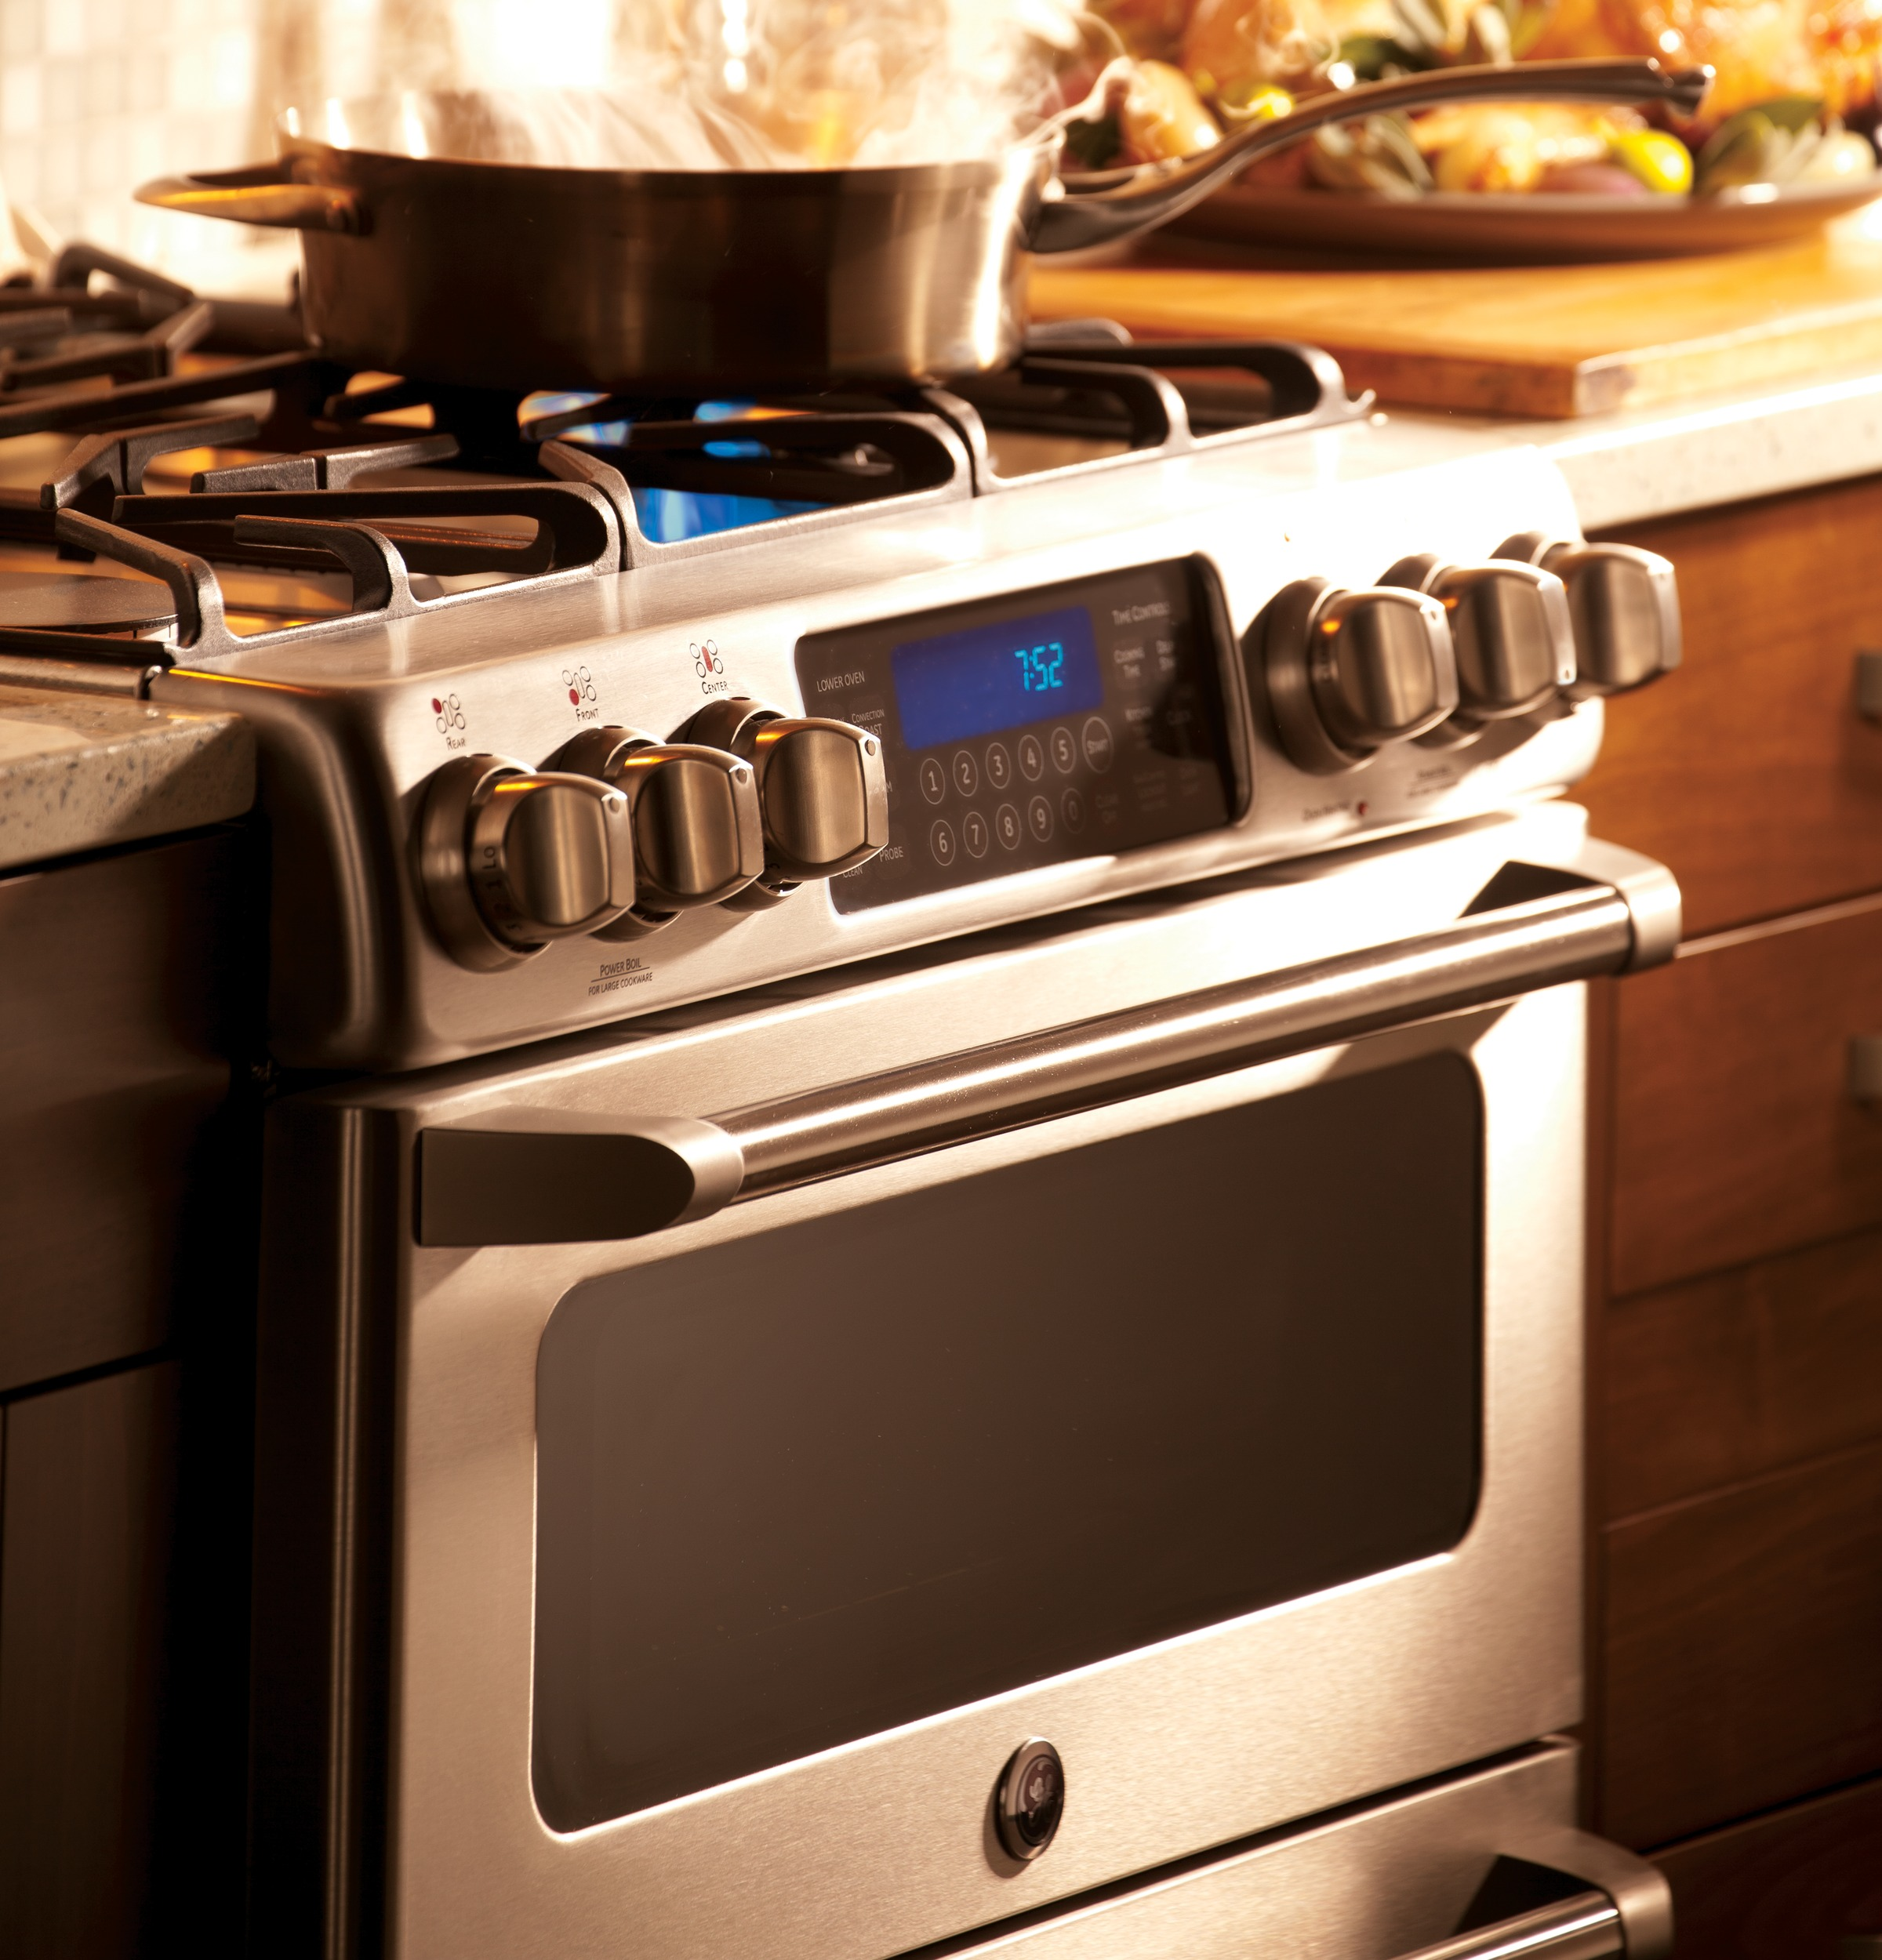 Wall oven under cooktop - 1 Of 12